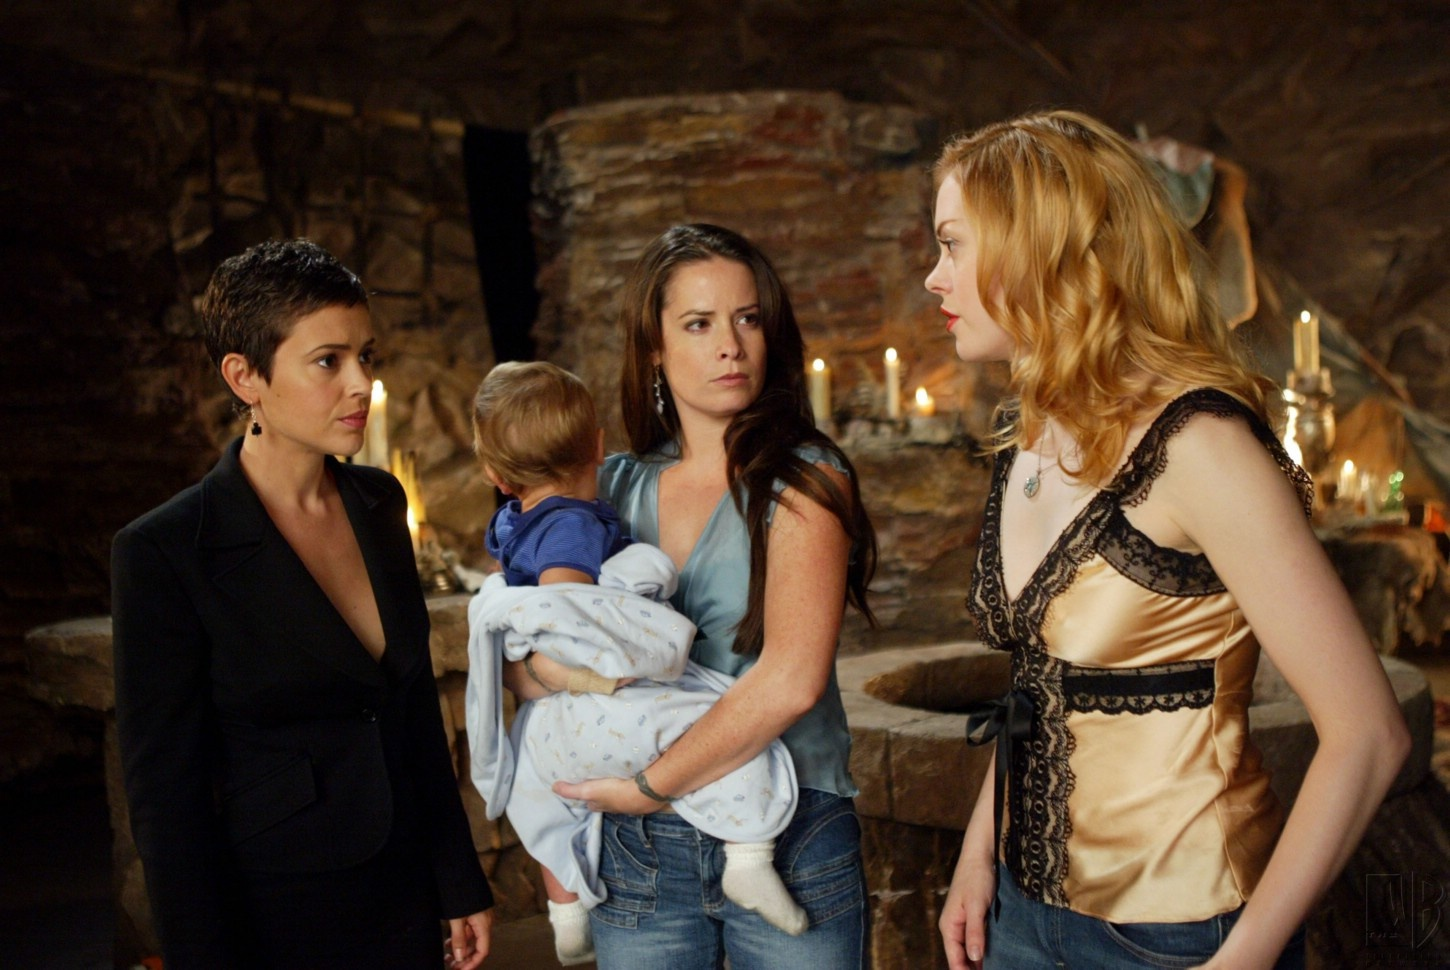 Charmed: My Three Witches